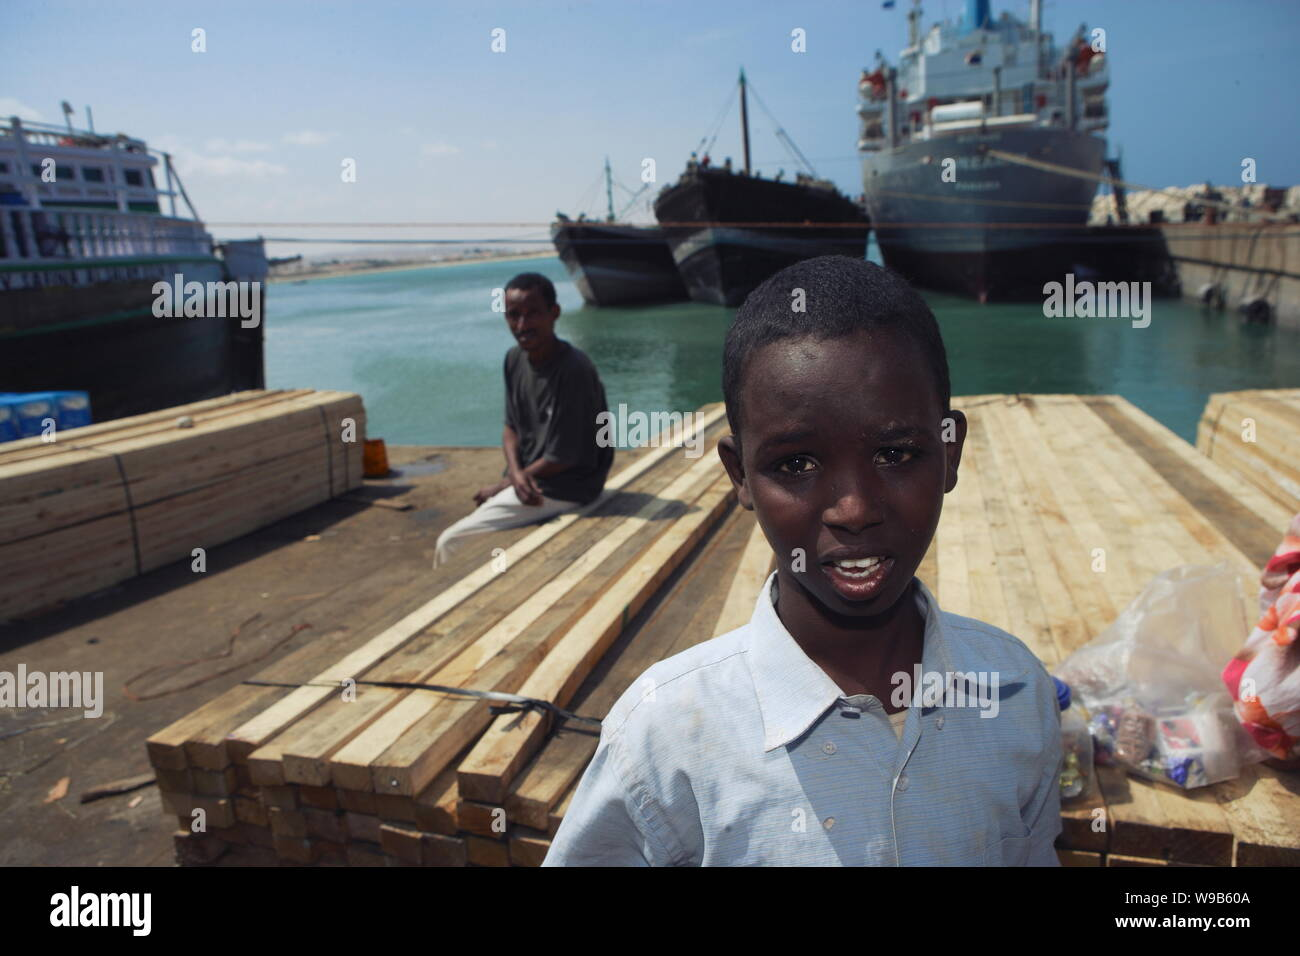 Somali workers pose next to wood products at the harbor in